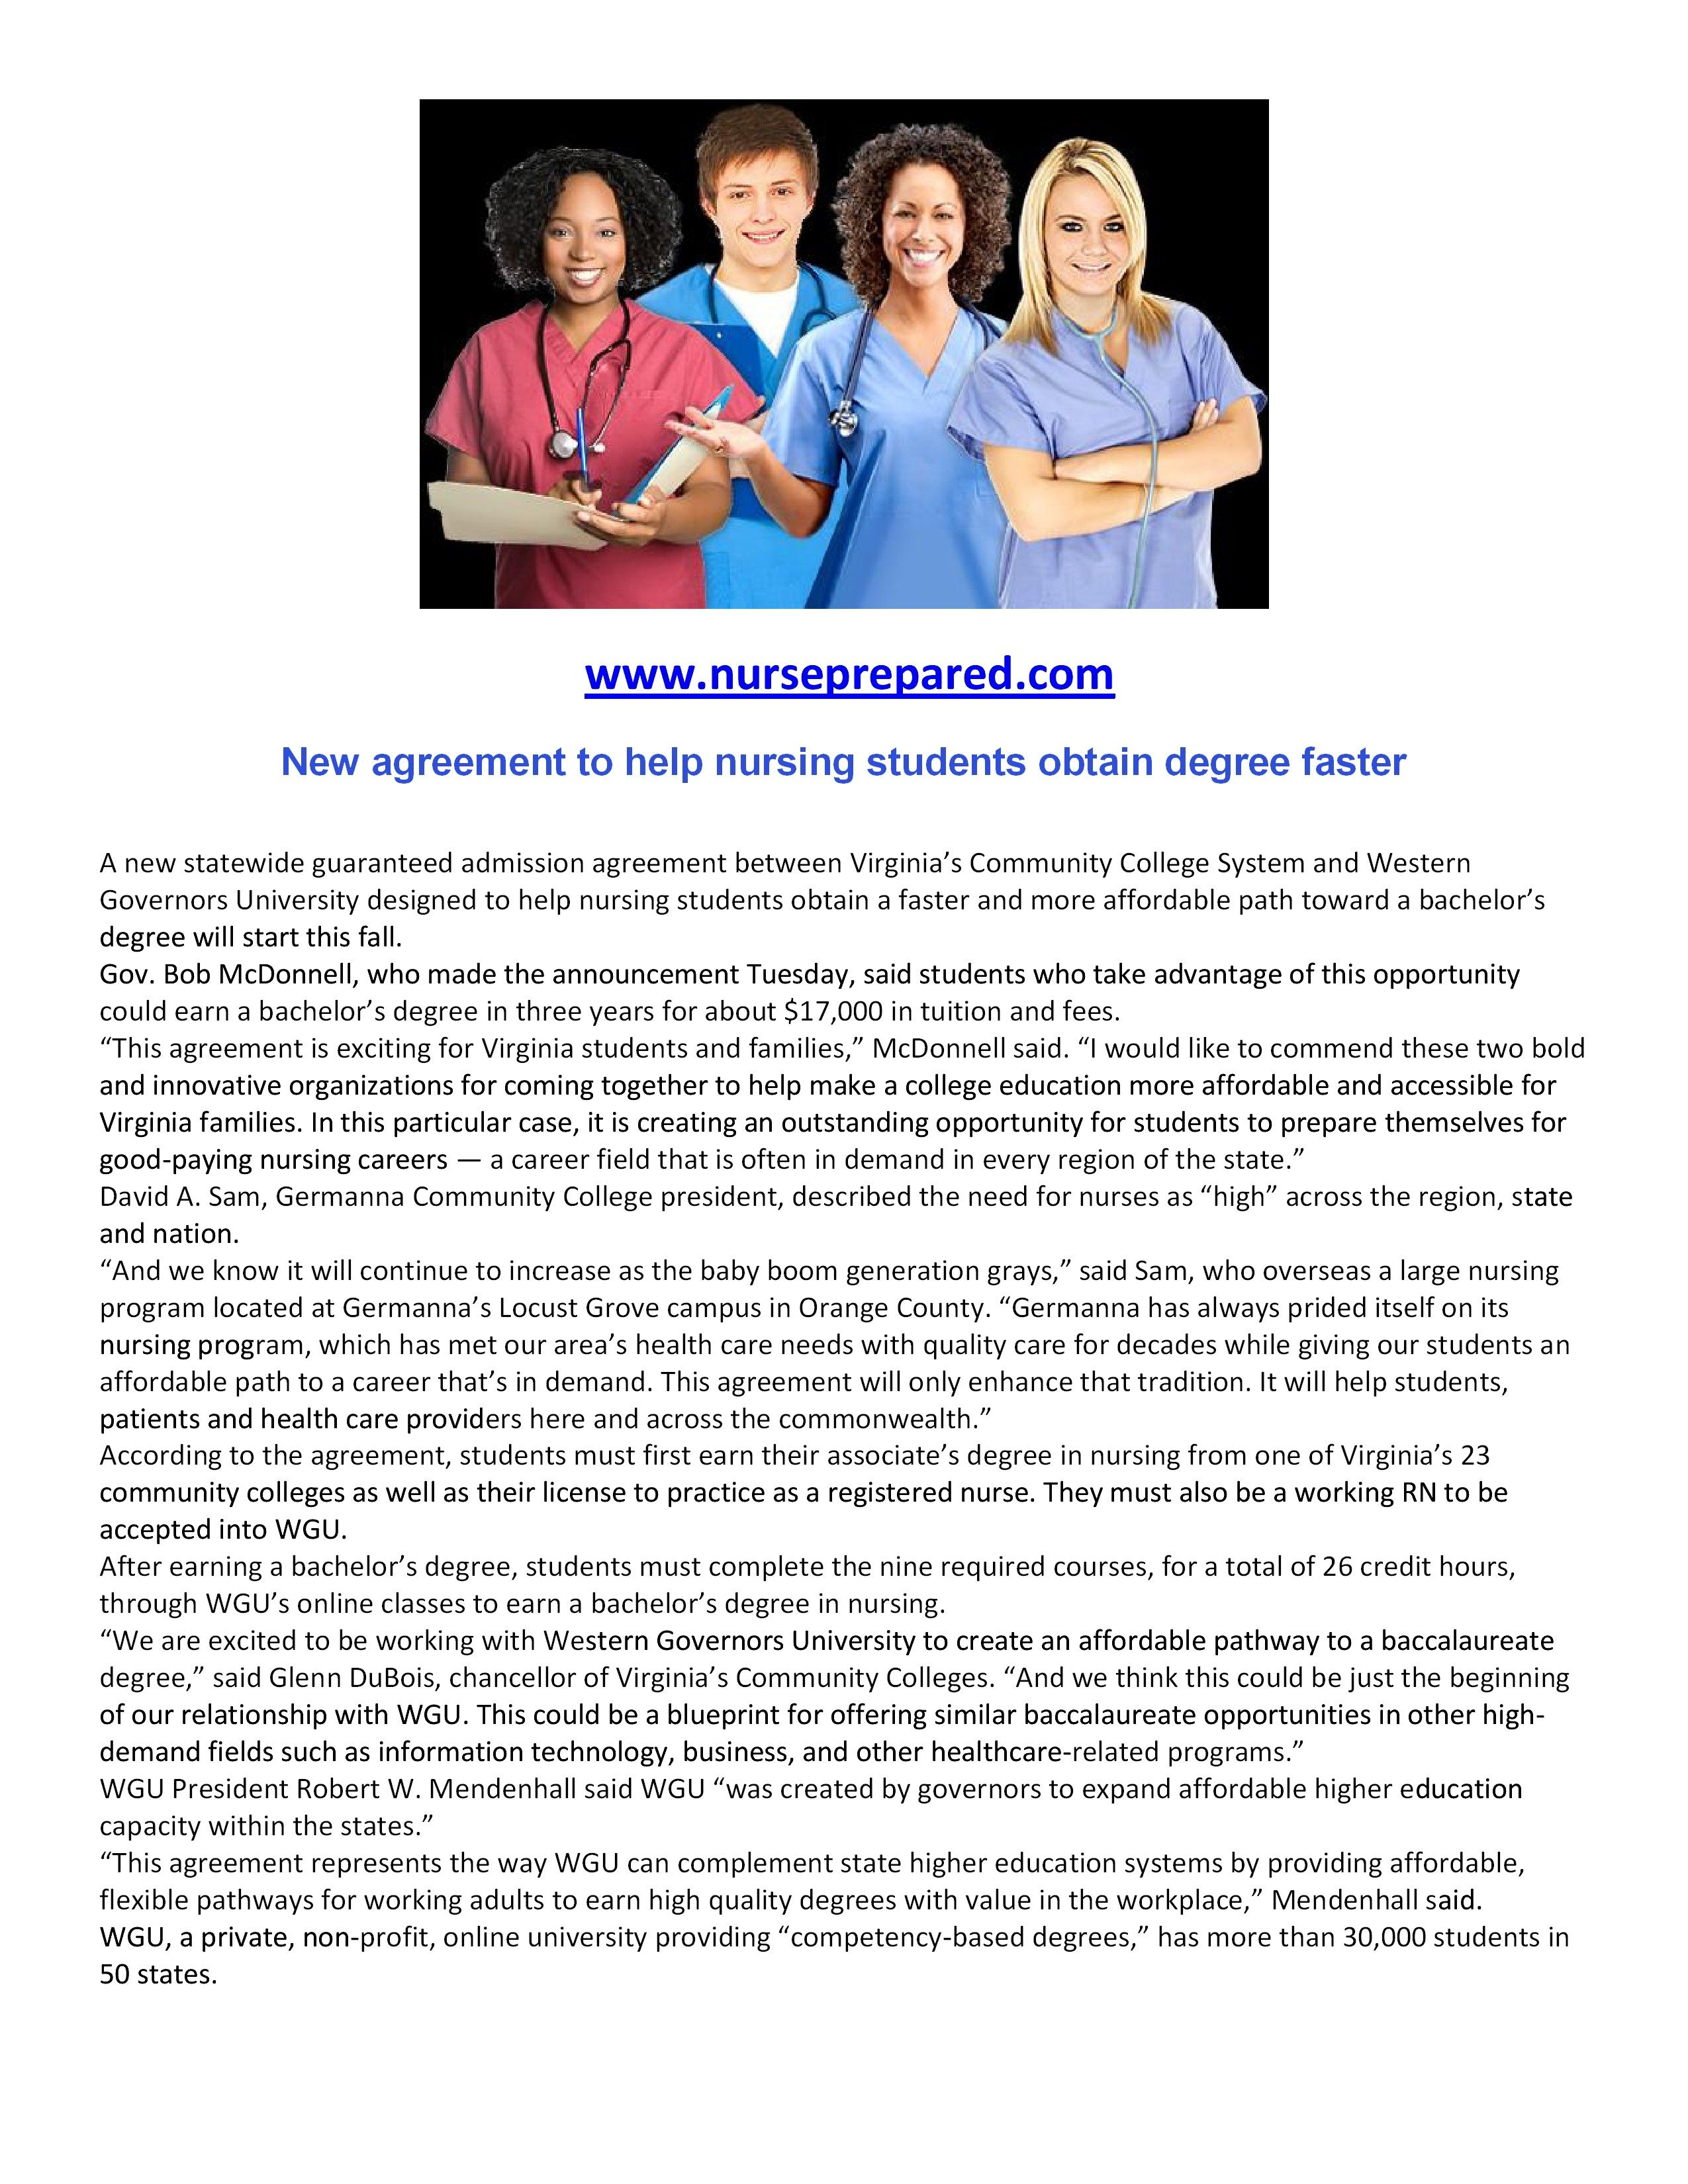 how to obtain your nursing degree faster